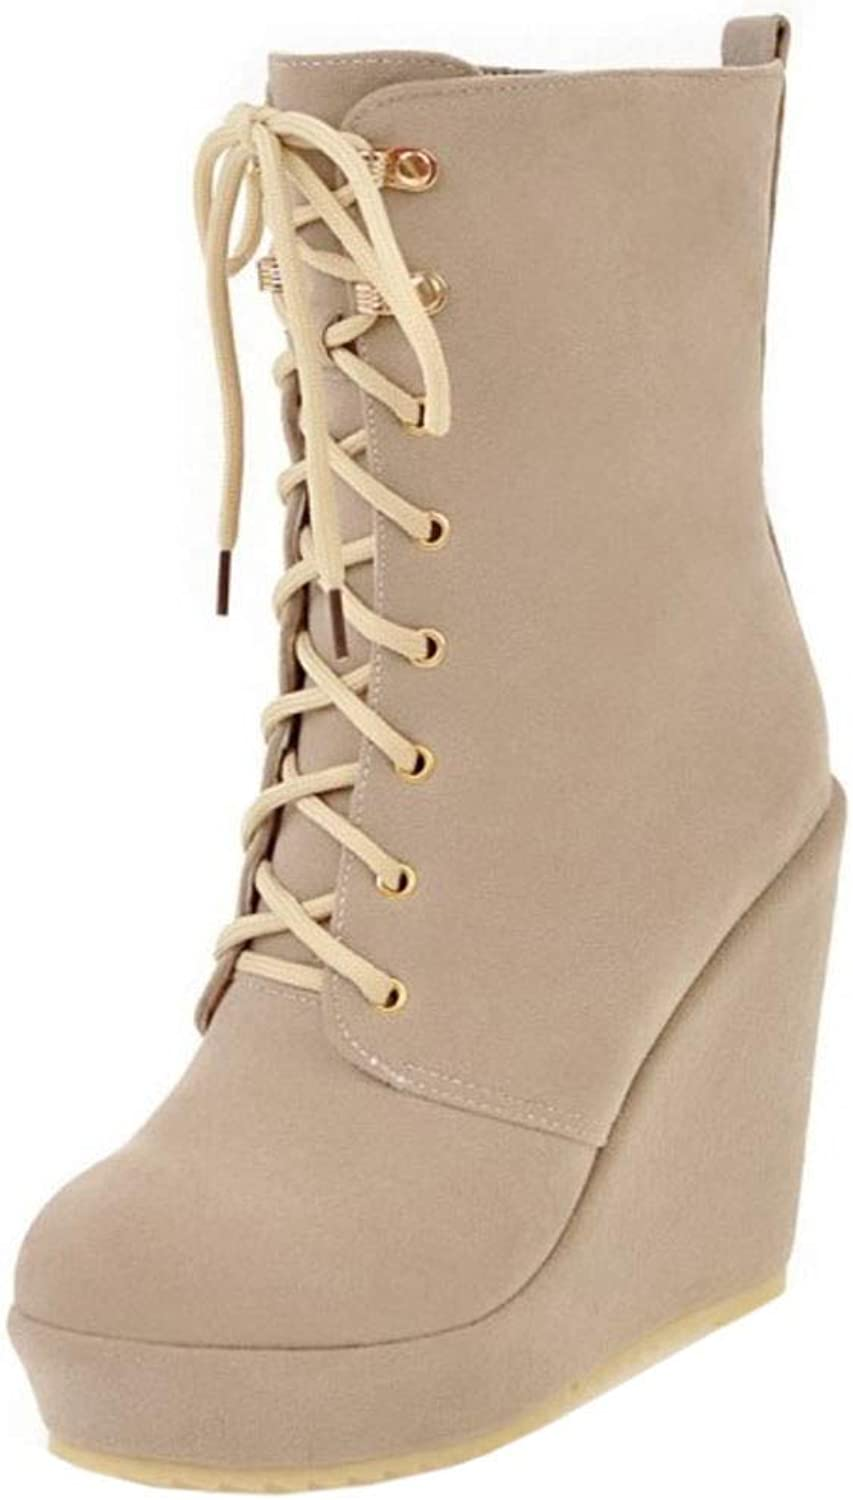 Melady Fashion Wedges Heels Bootie Lace up